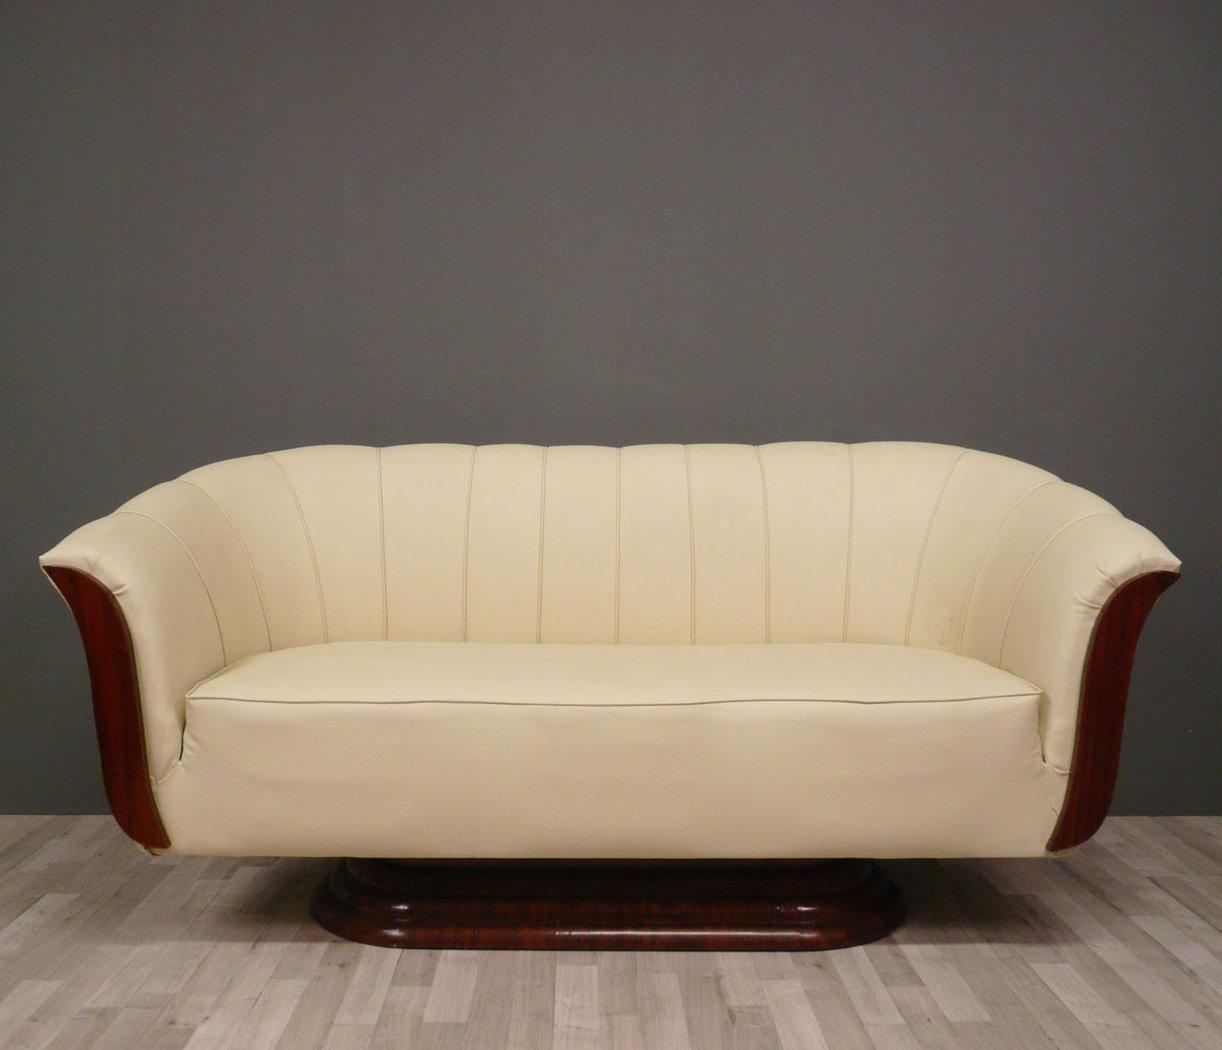 Sofas Center : Arteco Sofa Swedish Satin Birch Upholsteredrupal Throughout Art Deco Sofa And Chairs (View 19 of 20)